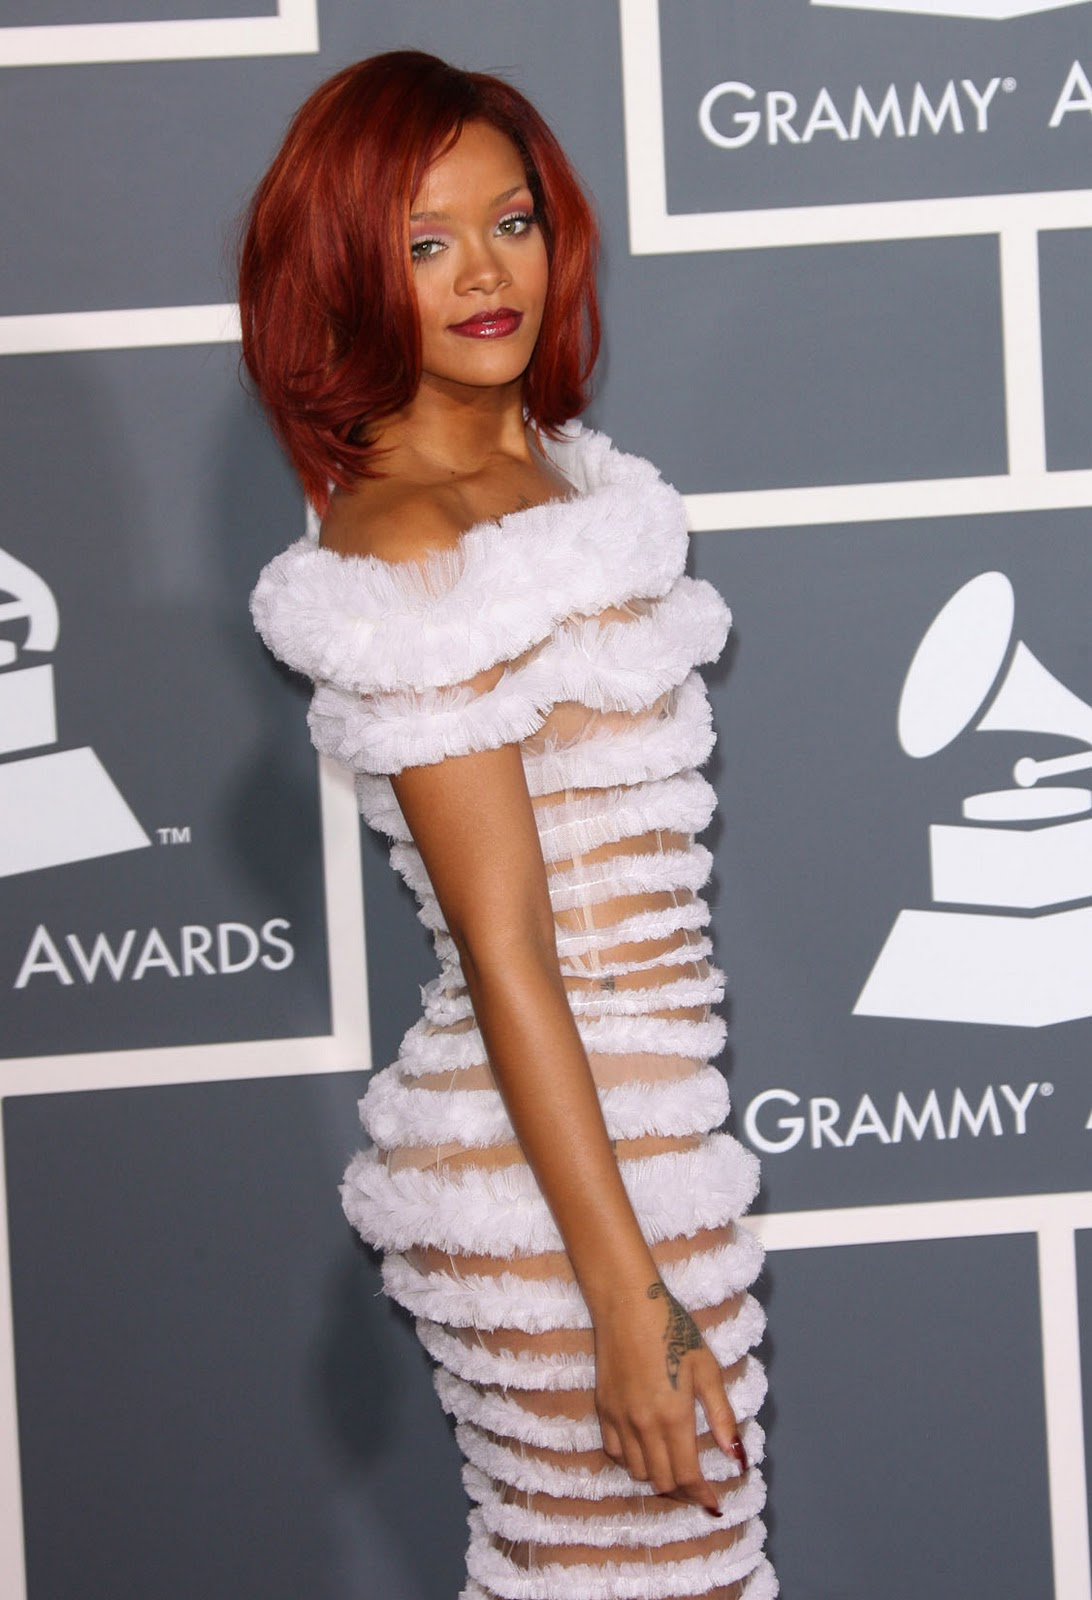 Sexy actress from india rihanna see through white dress